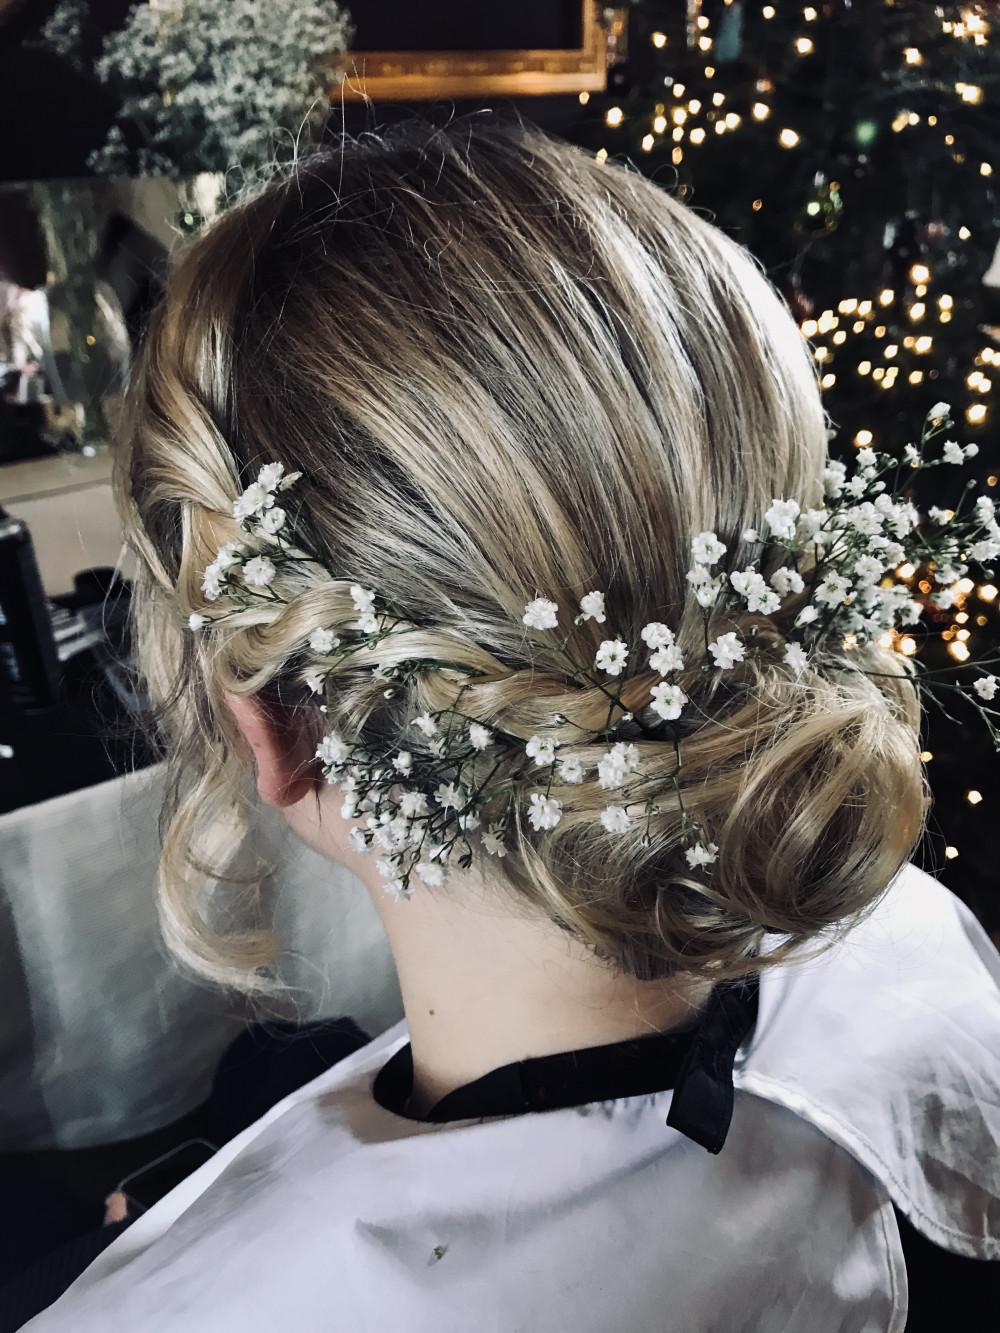 Hair style for one of the bridesmaids :) Much more of my work is here https://m.facebook.com/katrinmua/ - Make Me Bridal Artist: Makeup and Hair by Katrina.